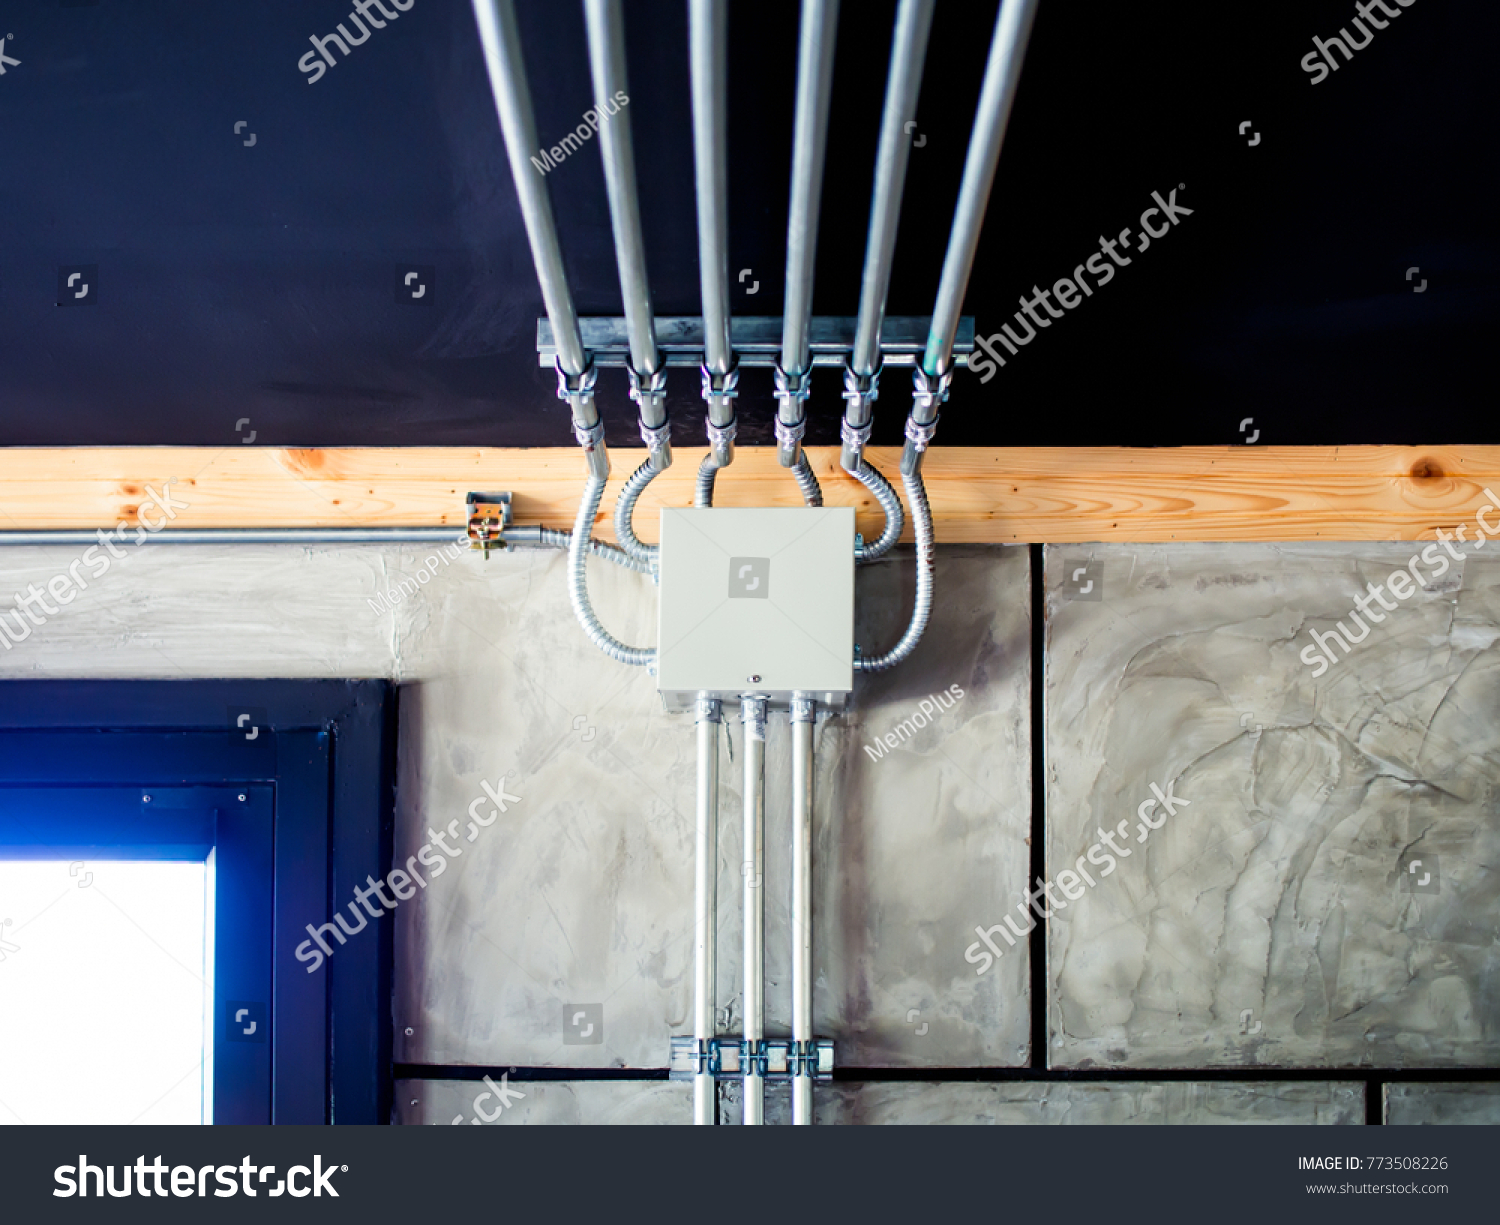 Electrical Metal Conduit Work Installation Stock Photo Wiring Steel Wires Running Across The Wall And Ceiling Loft